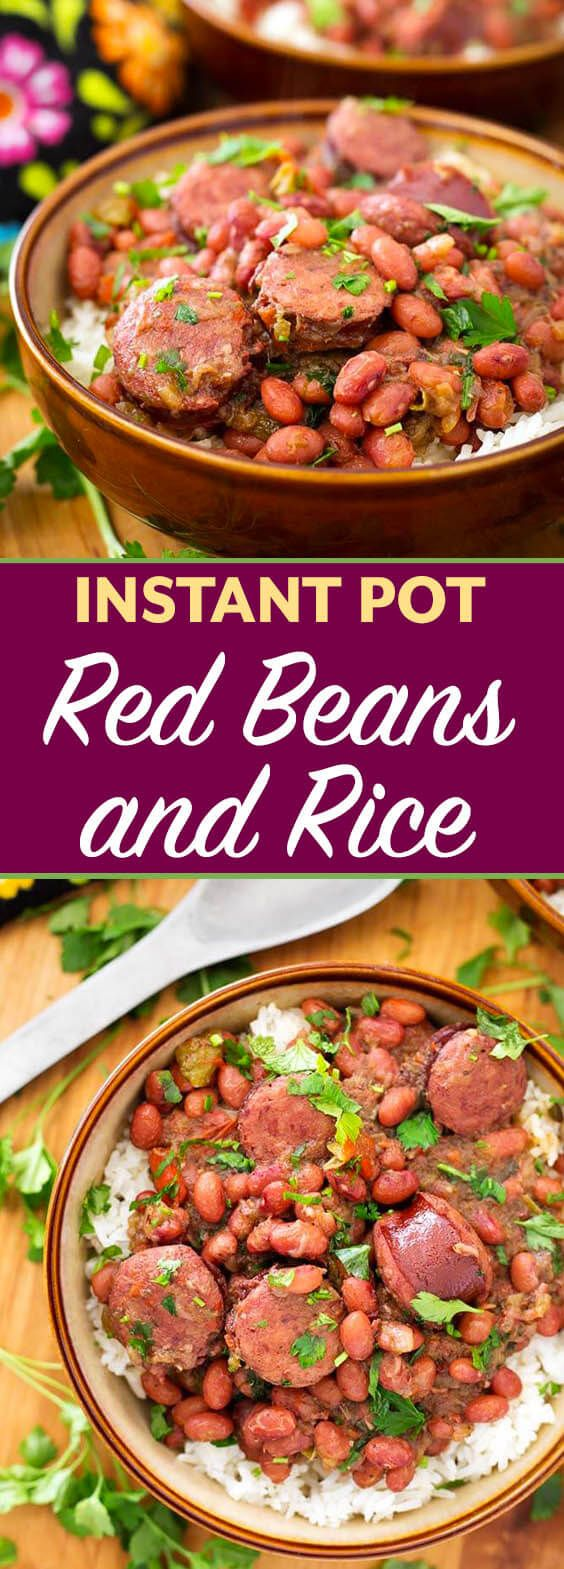 Instant Pot Red Beans and Rice With Sausage is a flavor packed, spicy New Orleans traditional meal. This pressure cooker Red Beans and Rice dish has lots of flavor, and you can make it from dry beans in just over an hour! simplyhappyfoodie.com #instantpotrecipes #instantpotredbeansandrice #pressurecookerrecipes #pressurecookerredbeansandrice